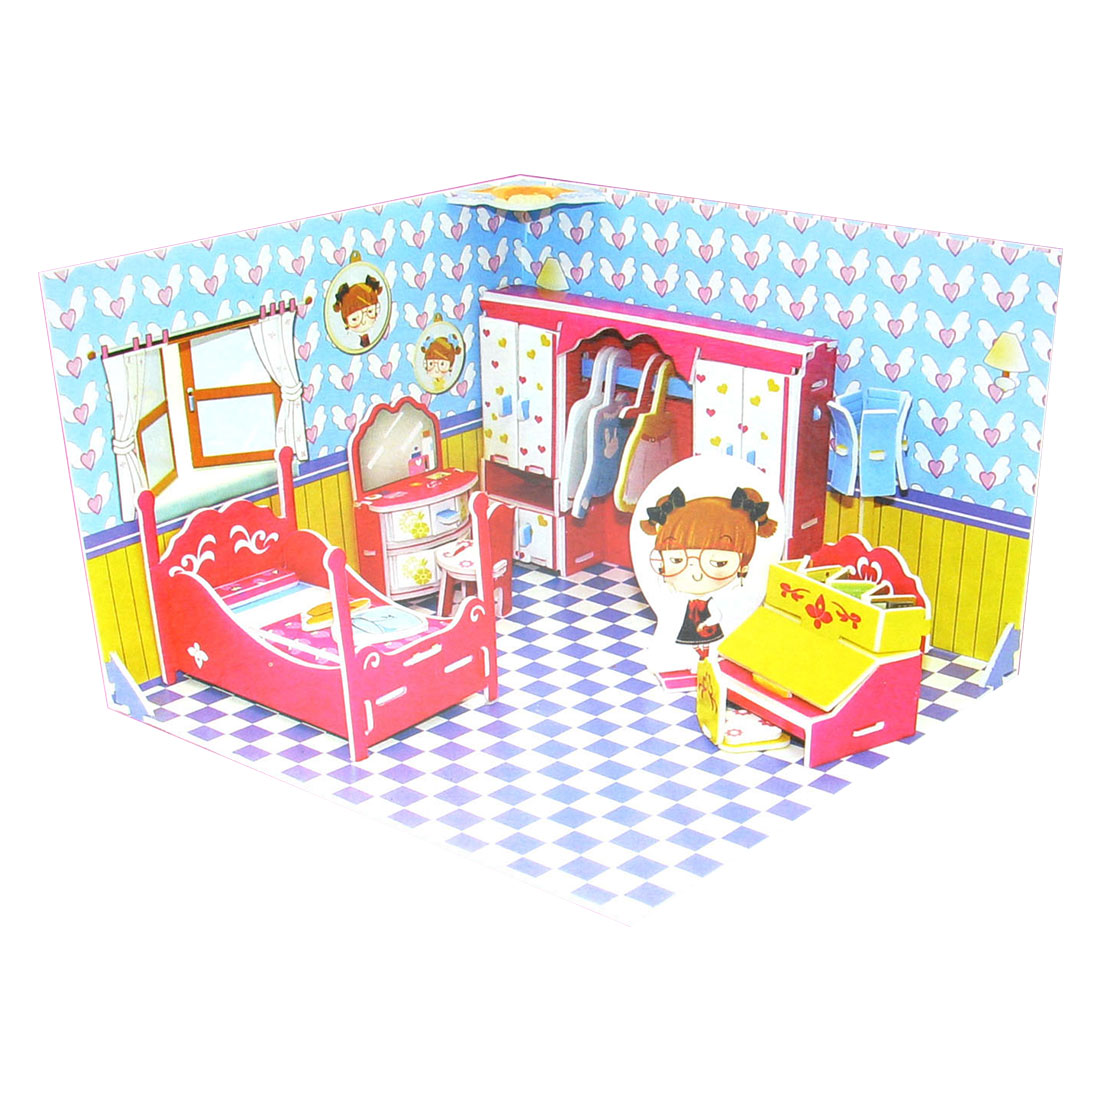 Educational Honey Bedroom 3D Puzzle Toy